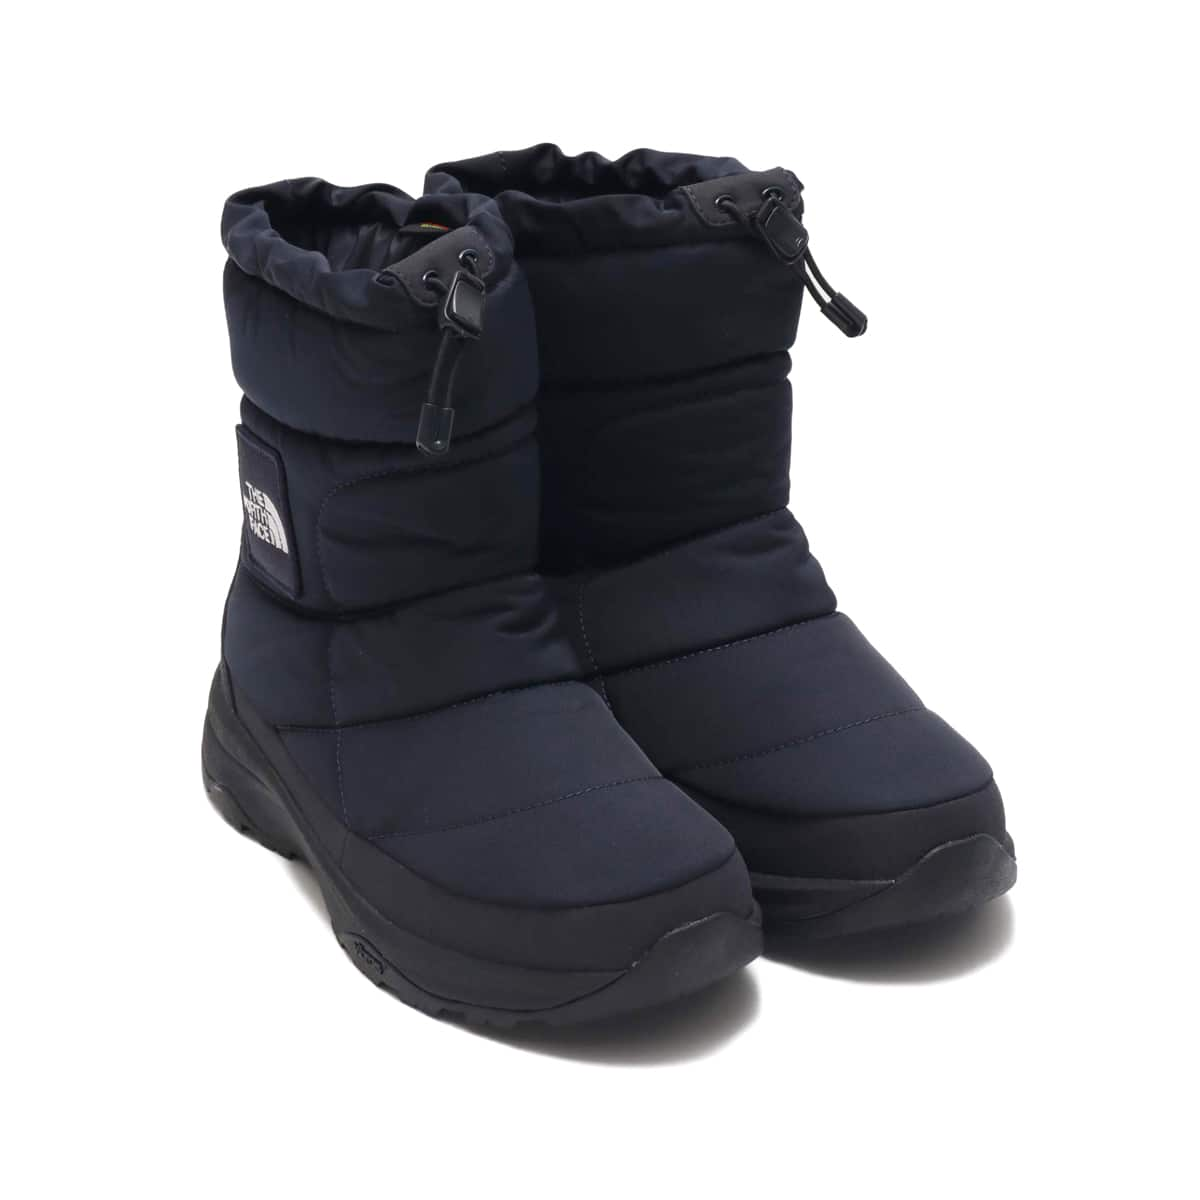 THE NORTH FACE NUPTSE BOOTIE WP V ダークネイビー 19FW-I_photo_large